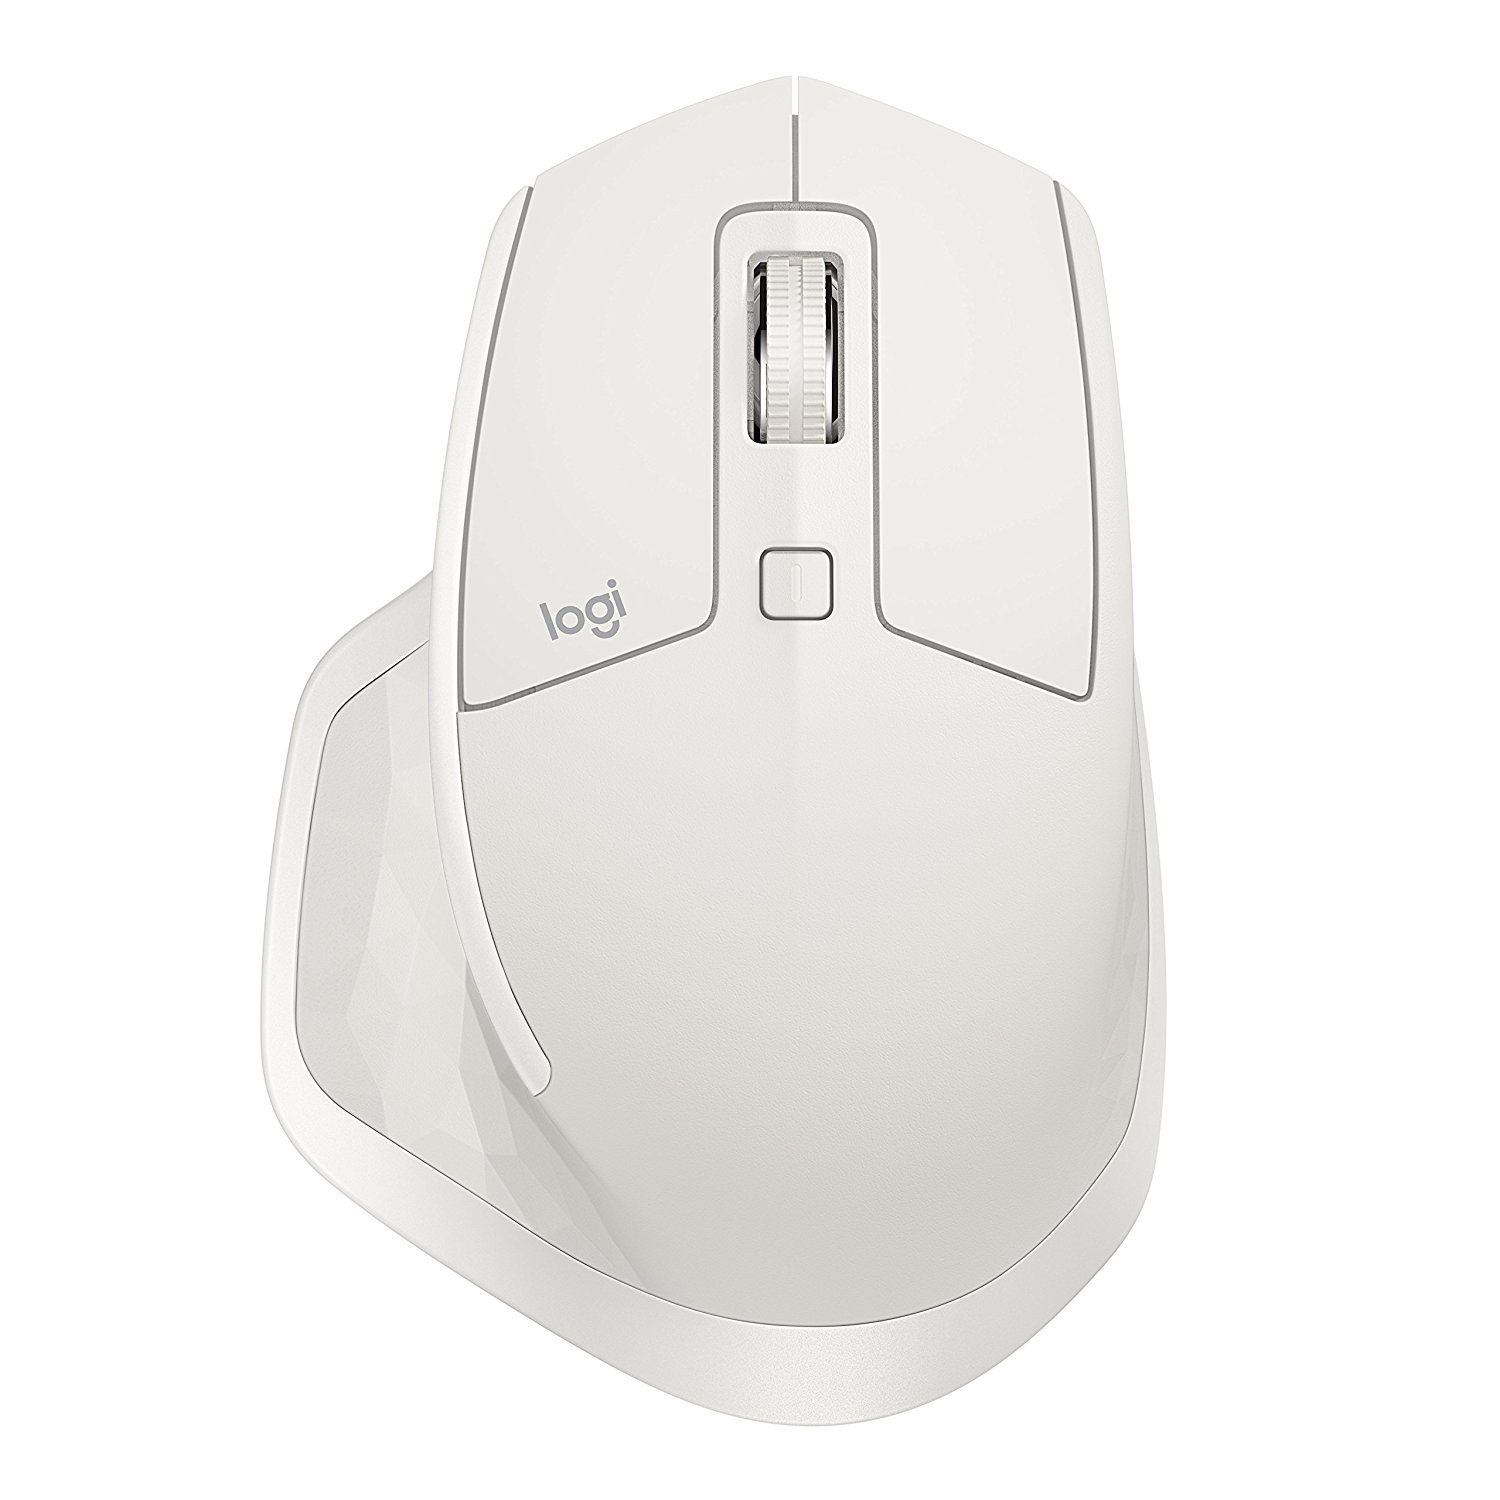 1b63299e085 Amazon.com: Logitech MX Master 2S Wireless Mouse – Use on Any Surface,  Hyper-Fast Scrolling, Ergonomic Shape, Rechargeable, Control up to 3 Apple  Mac and ...